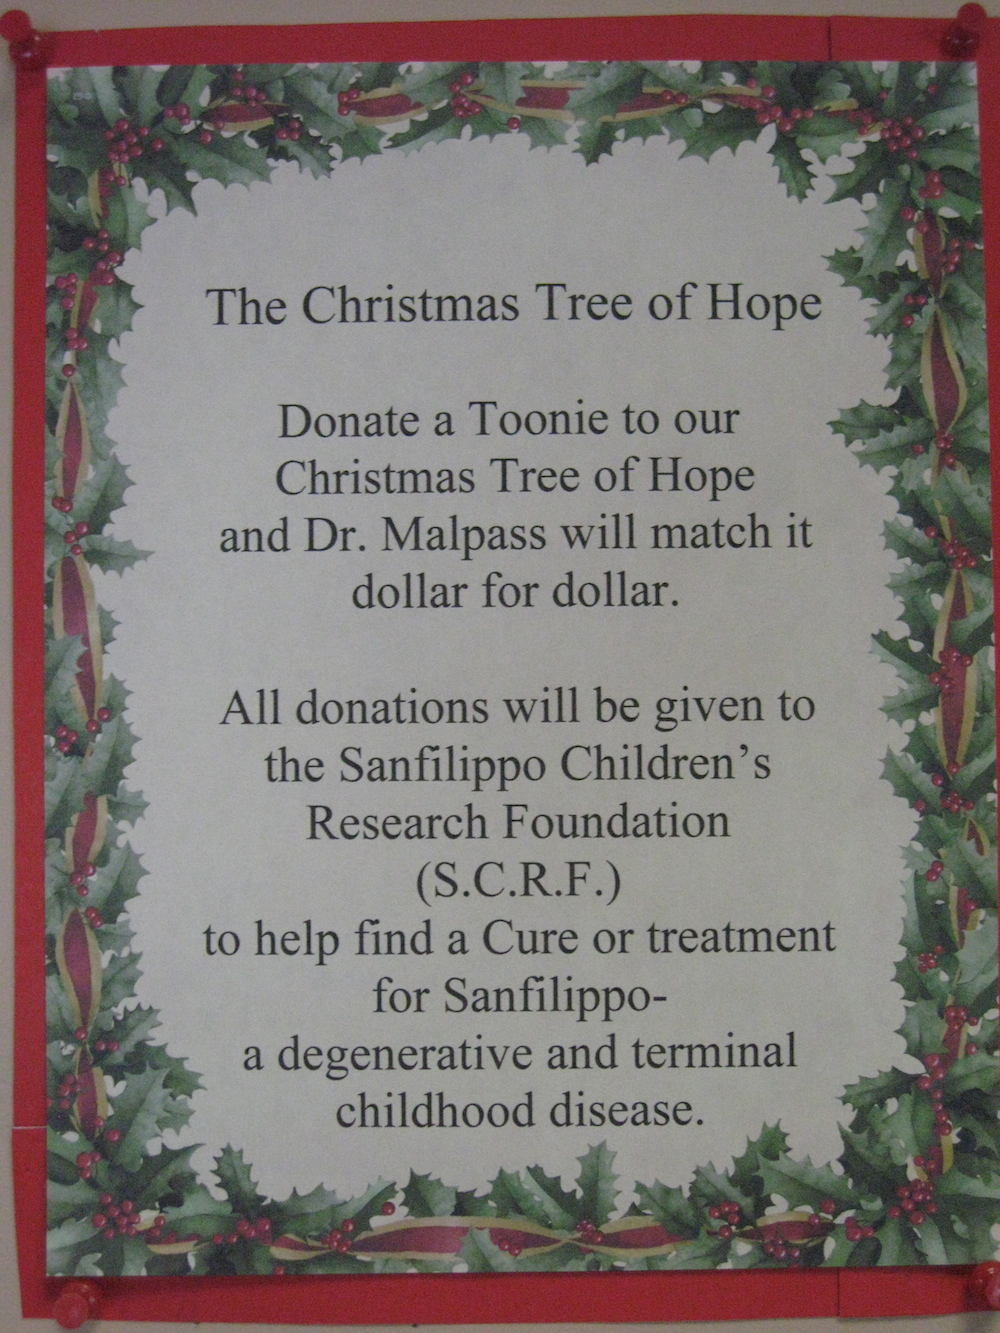 Please donate to our Christmas Tree of Hope | Dr Sandra Malpass ...